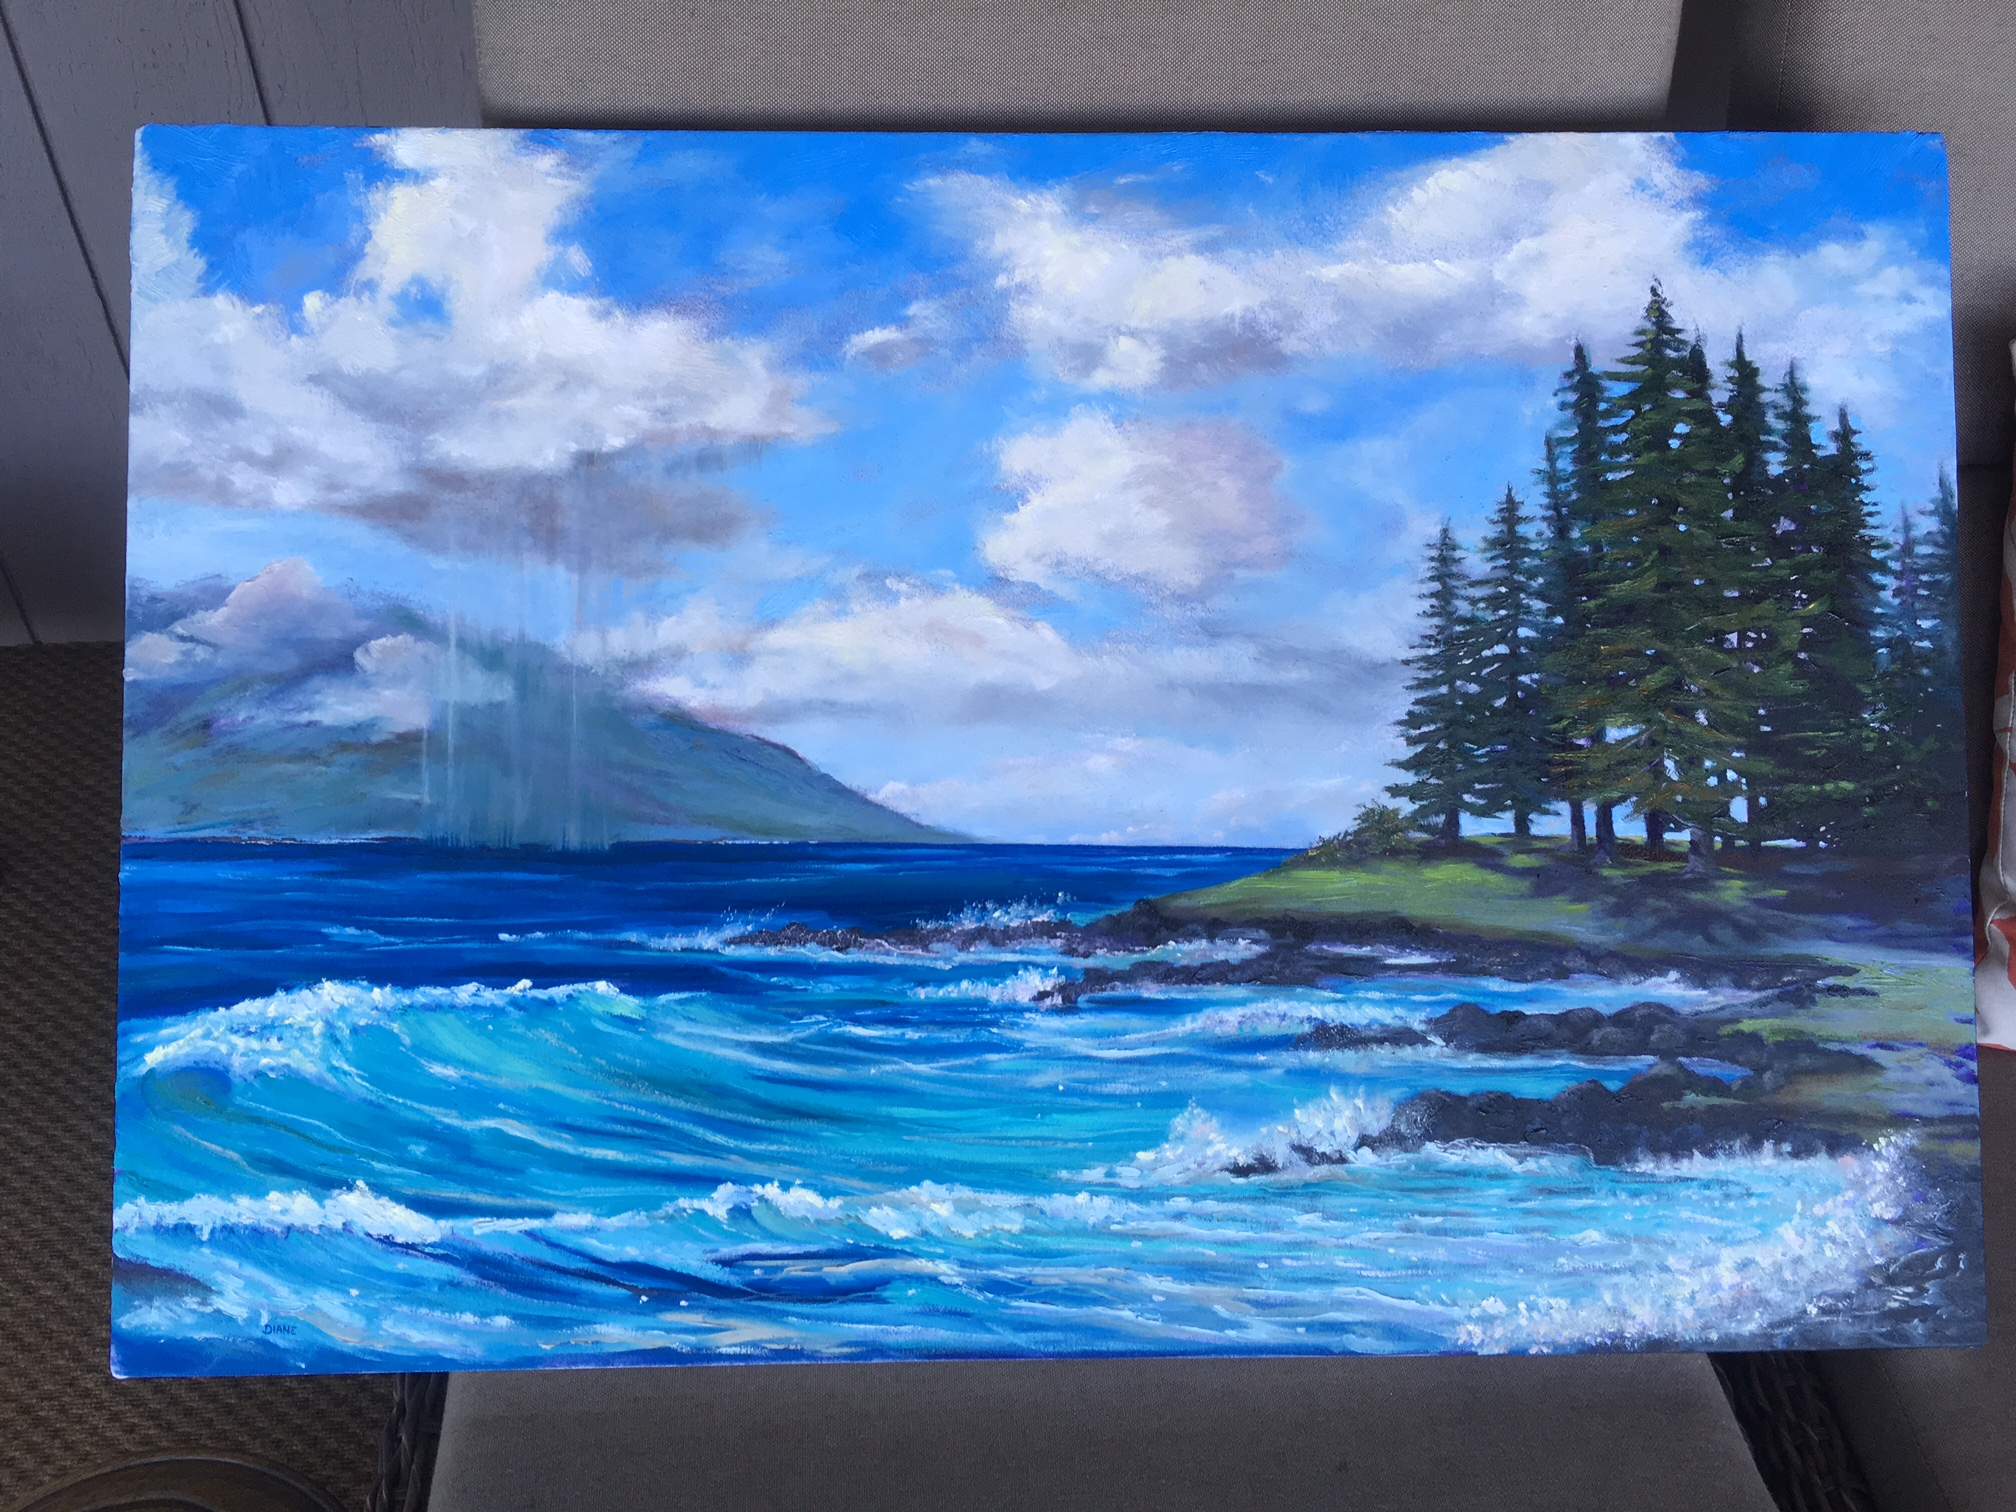 Mary's View- Kapalua Pines 36 x 24